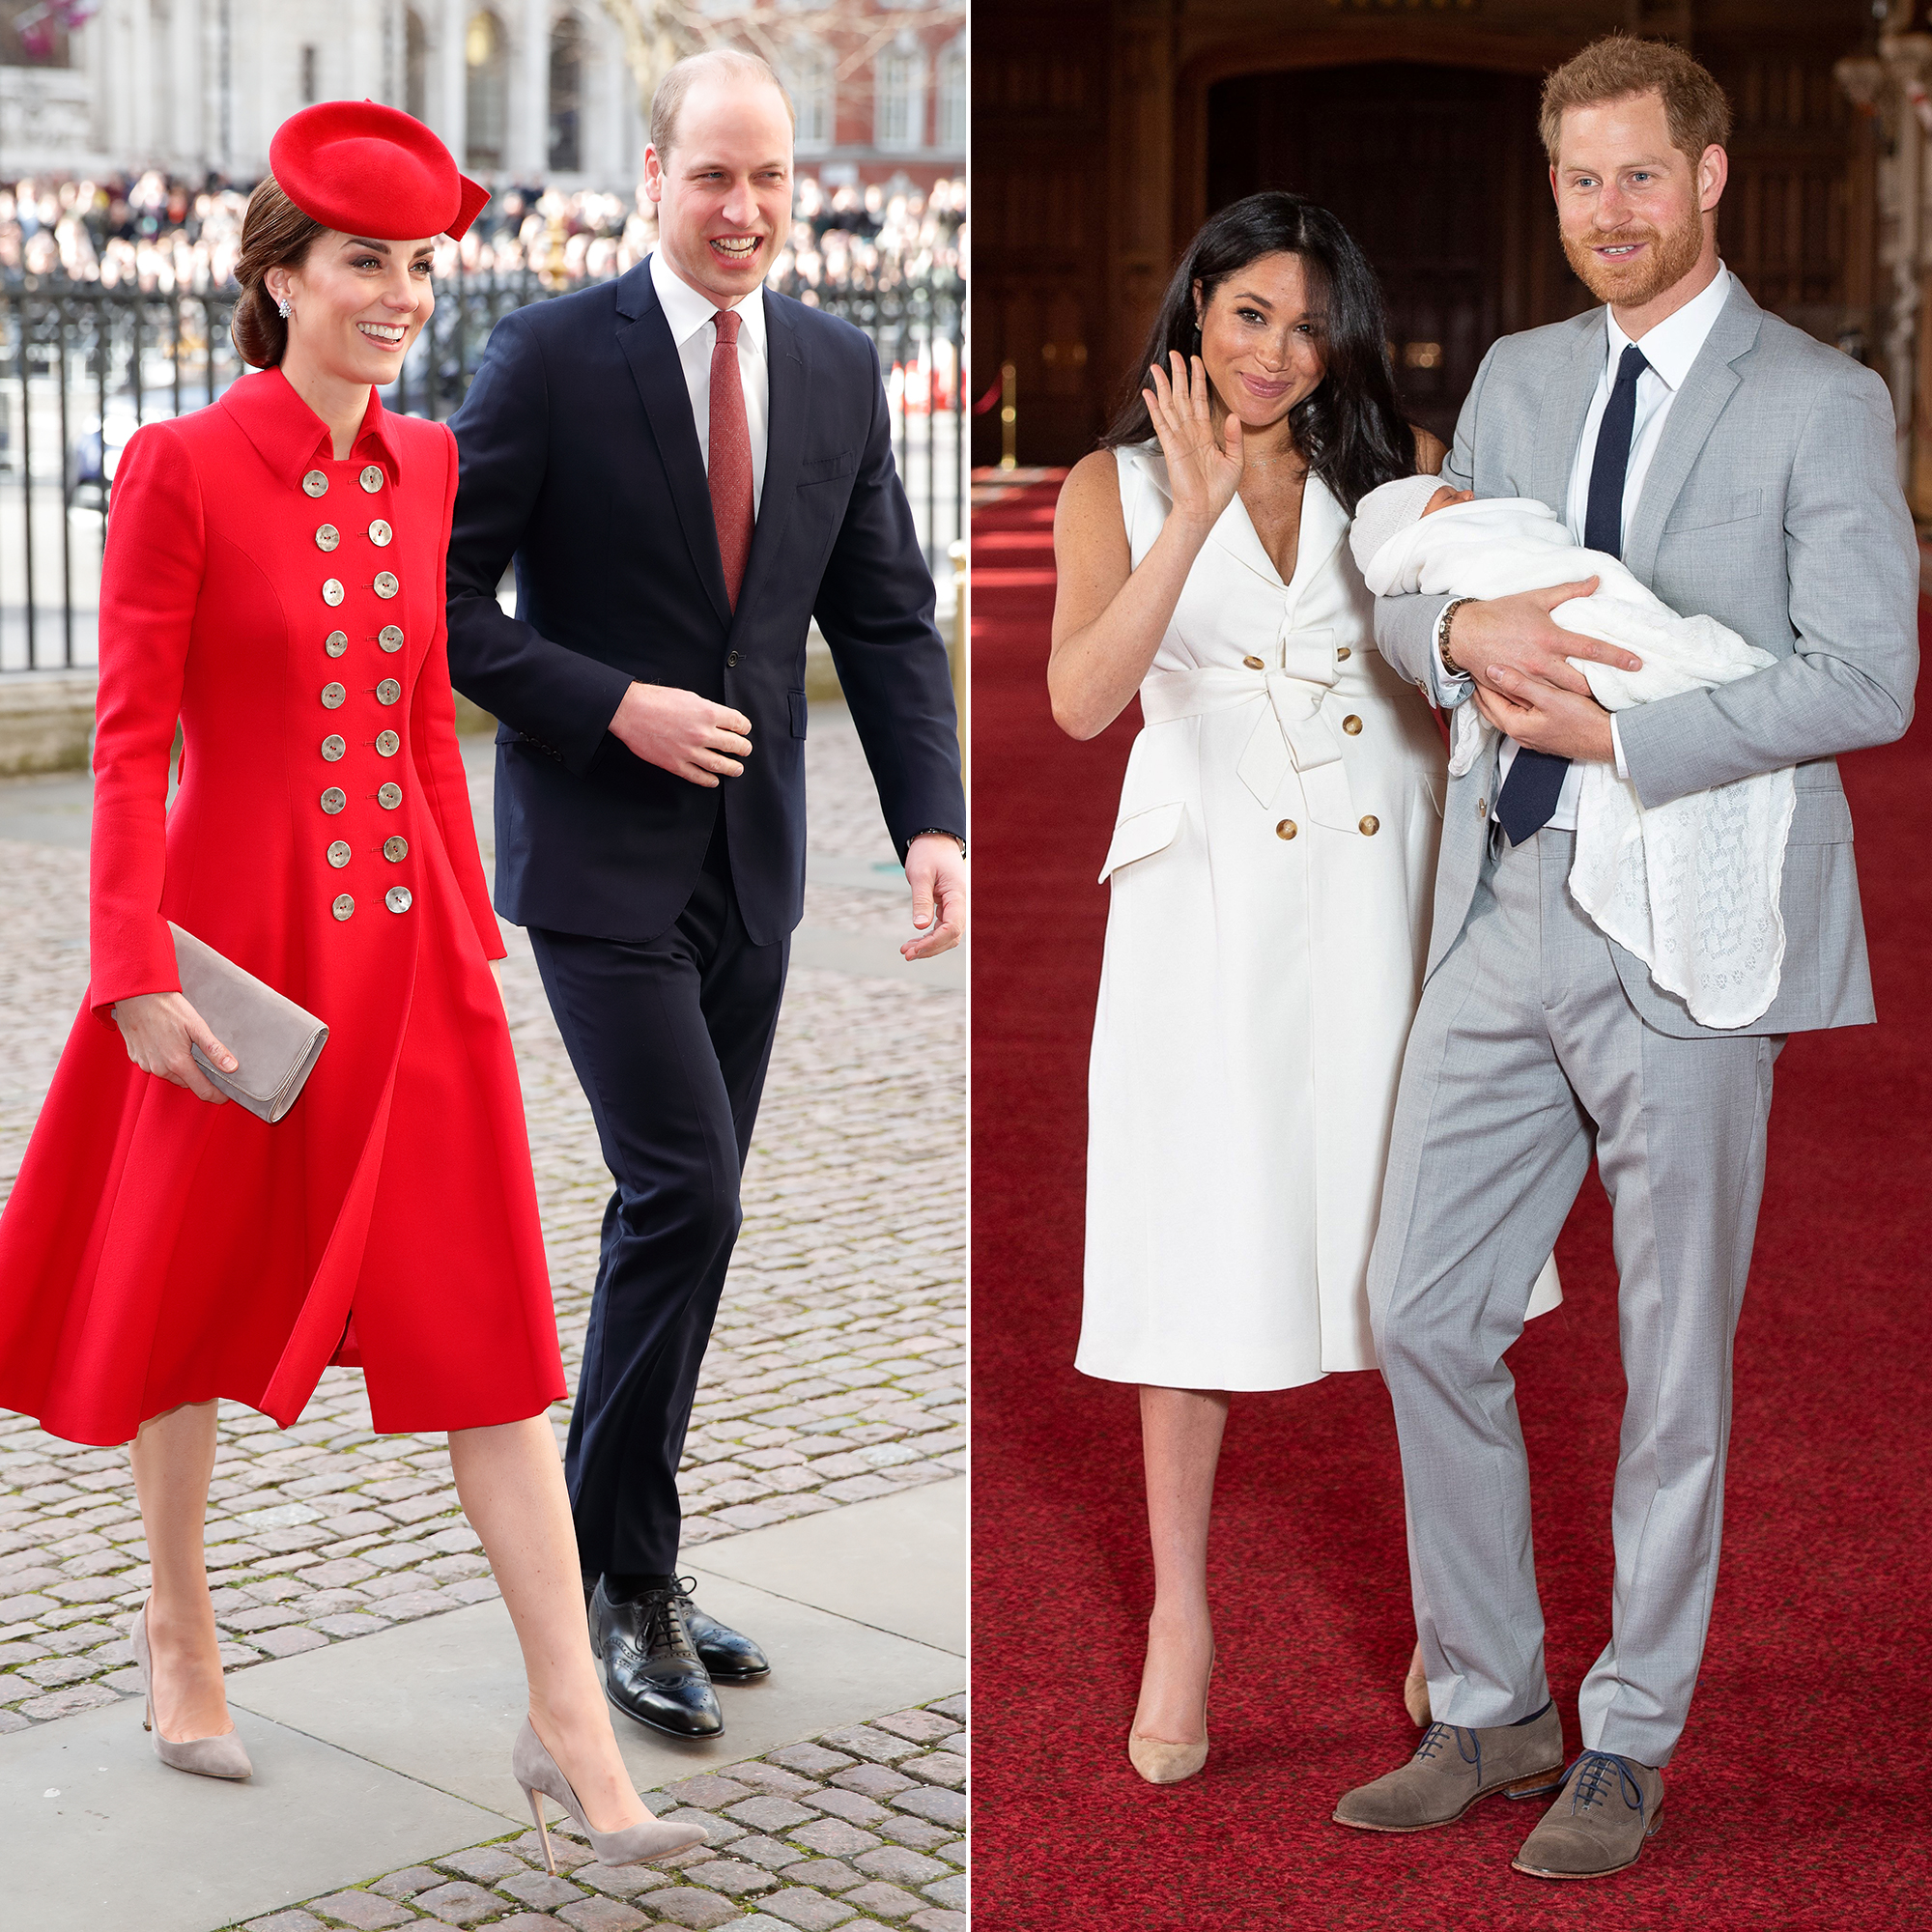 Prince Harry And Meghan Markle Expecting: Latest Updates